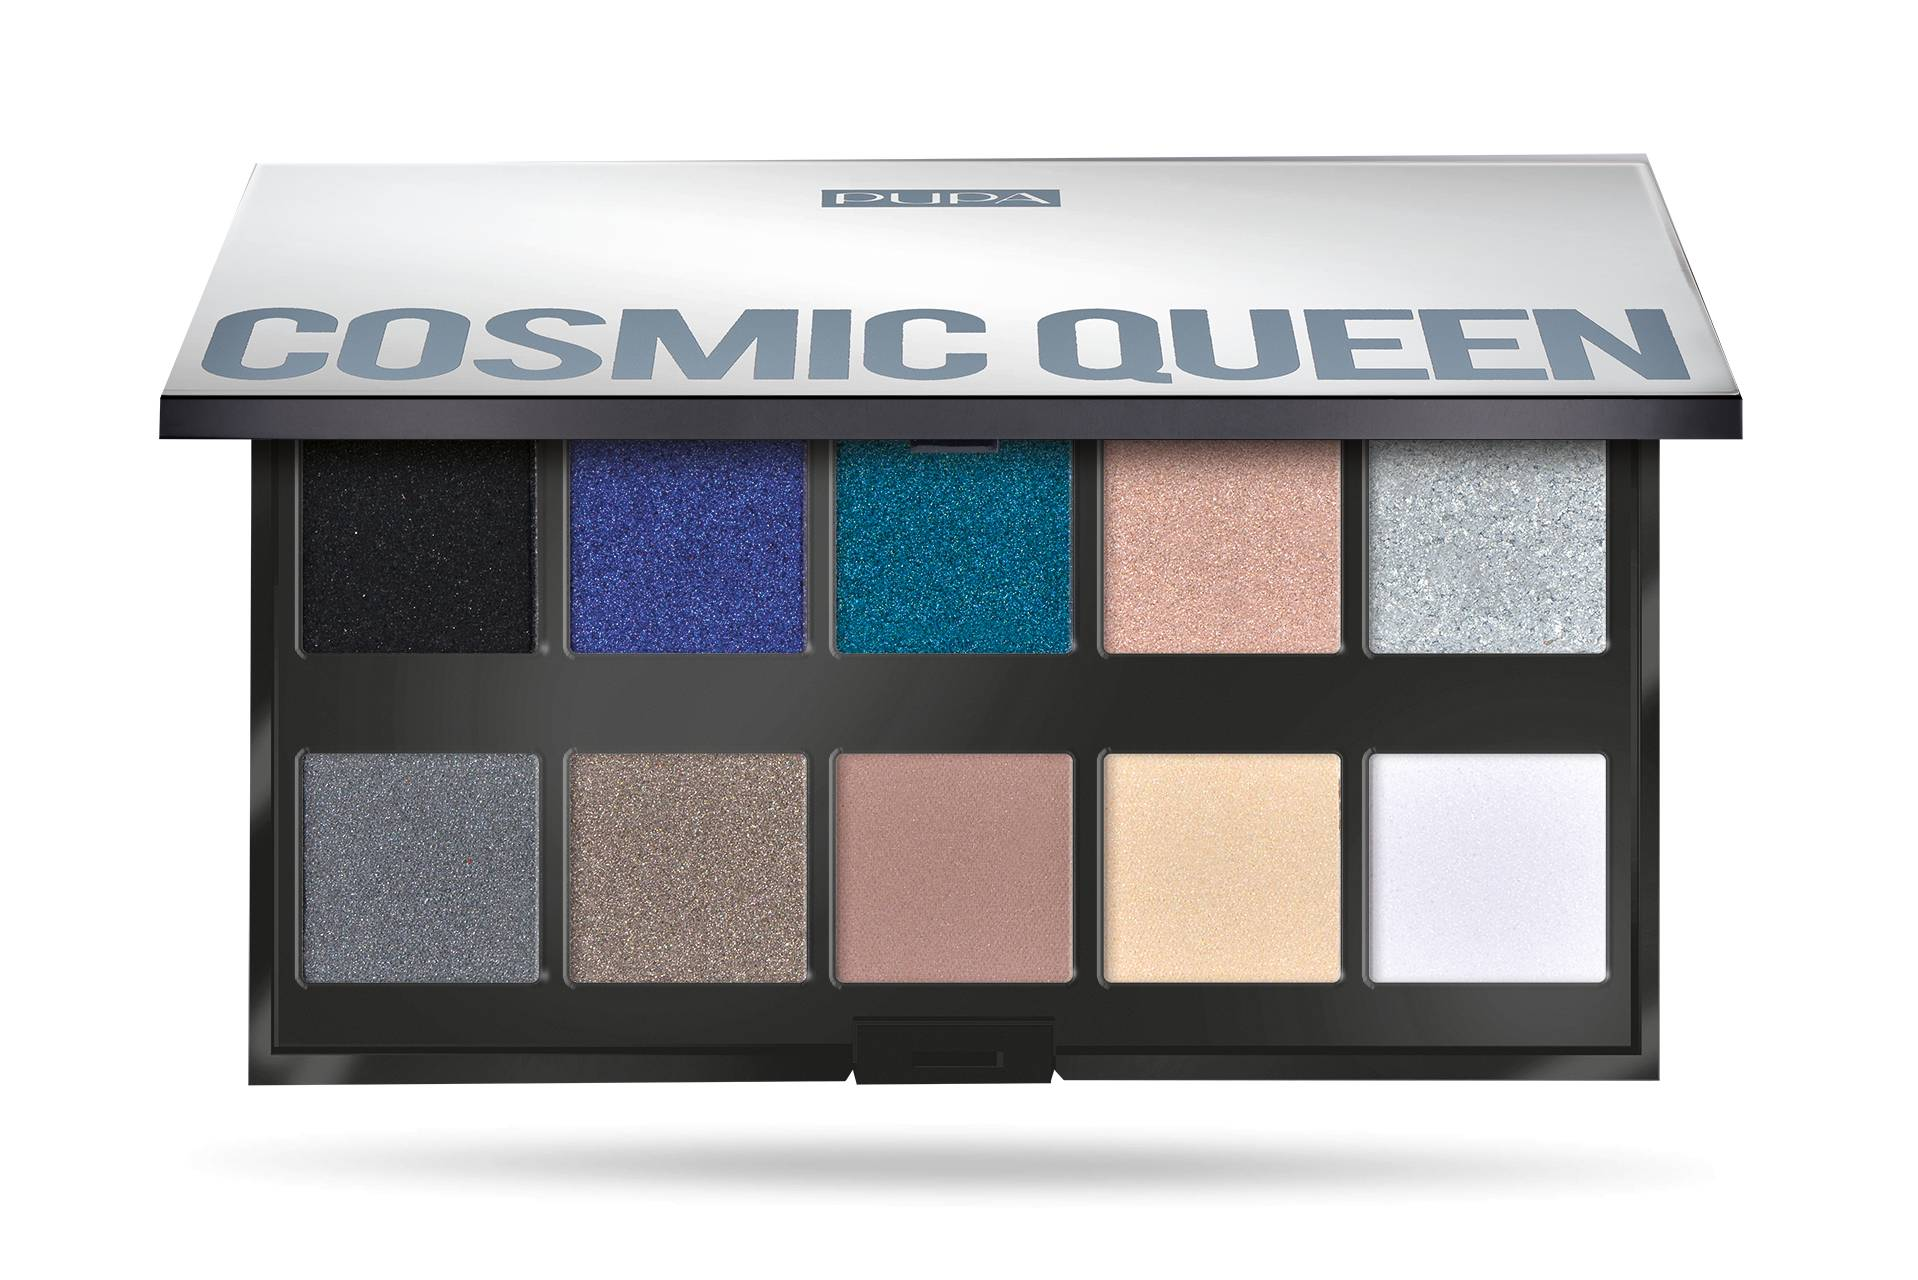 Pupa Palette Ombretti Makeup Stories 04 Cosmic Queen